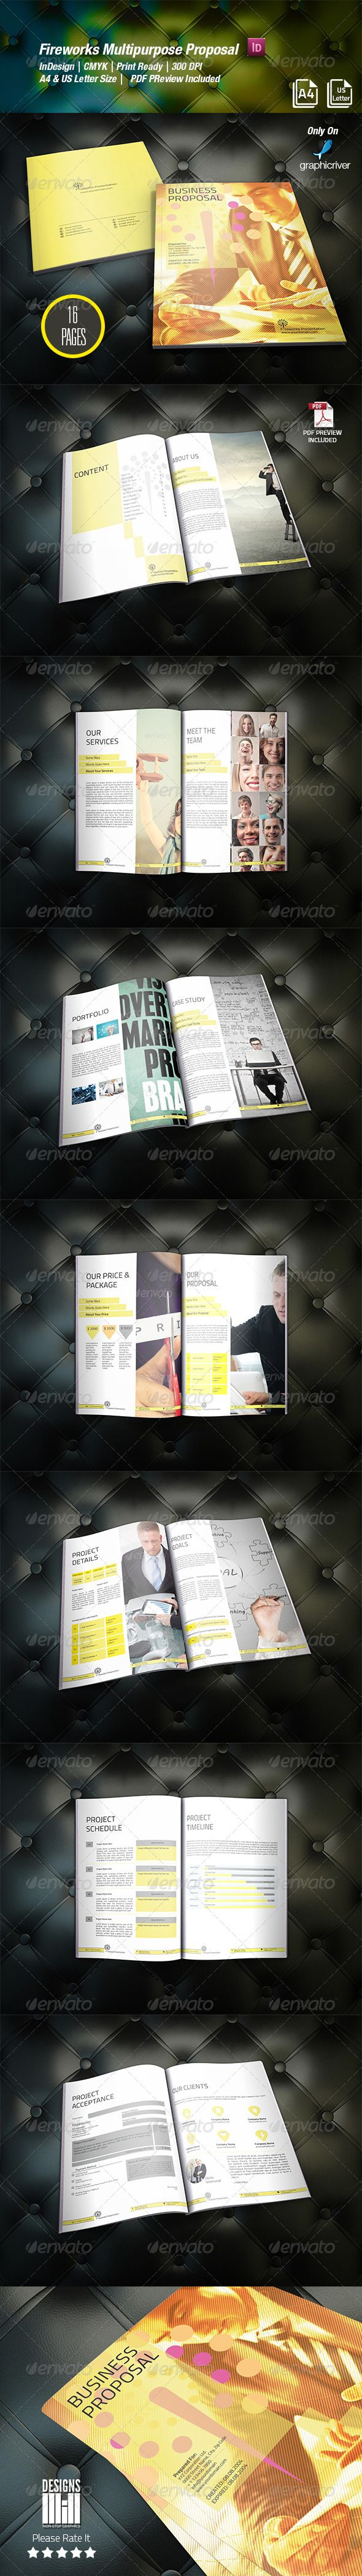 #Fireworks #Multipurpose Proposal  - #Proposals & #Invoices #Stationery Download here:  https://graphicriver.net/item/fireworks-multipurpose-proposal-/8373581?ref=alena994